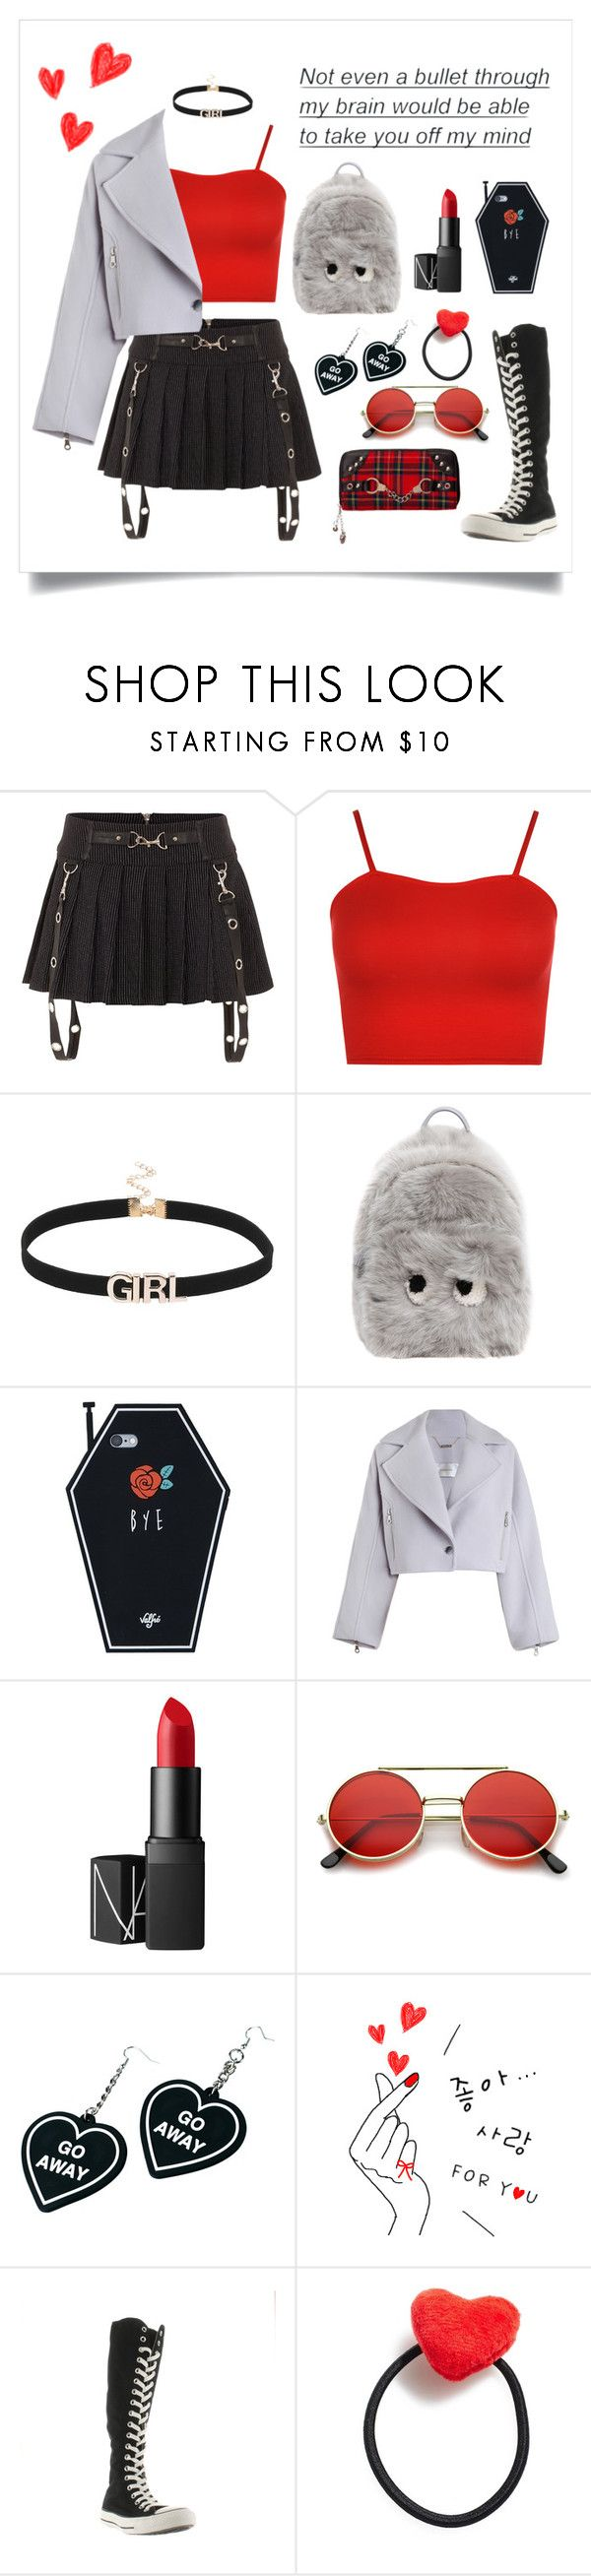 """Daily look❤️"" by helloume ❤ liked on Polyvore featuring WearAll, Anya Hindmarch, Zimmermann, Panacea, NARS Cosmetics, ZeroUV, Banned, Witch Worldwide, Converse and Ponytail Pals"